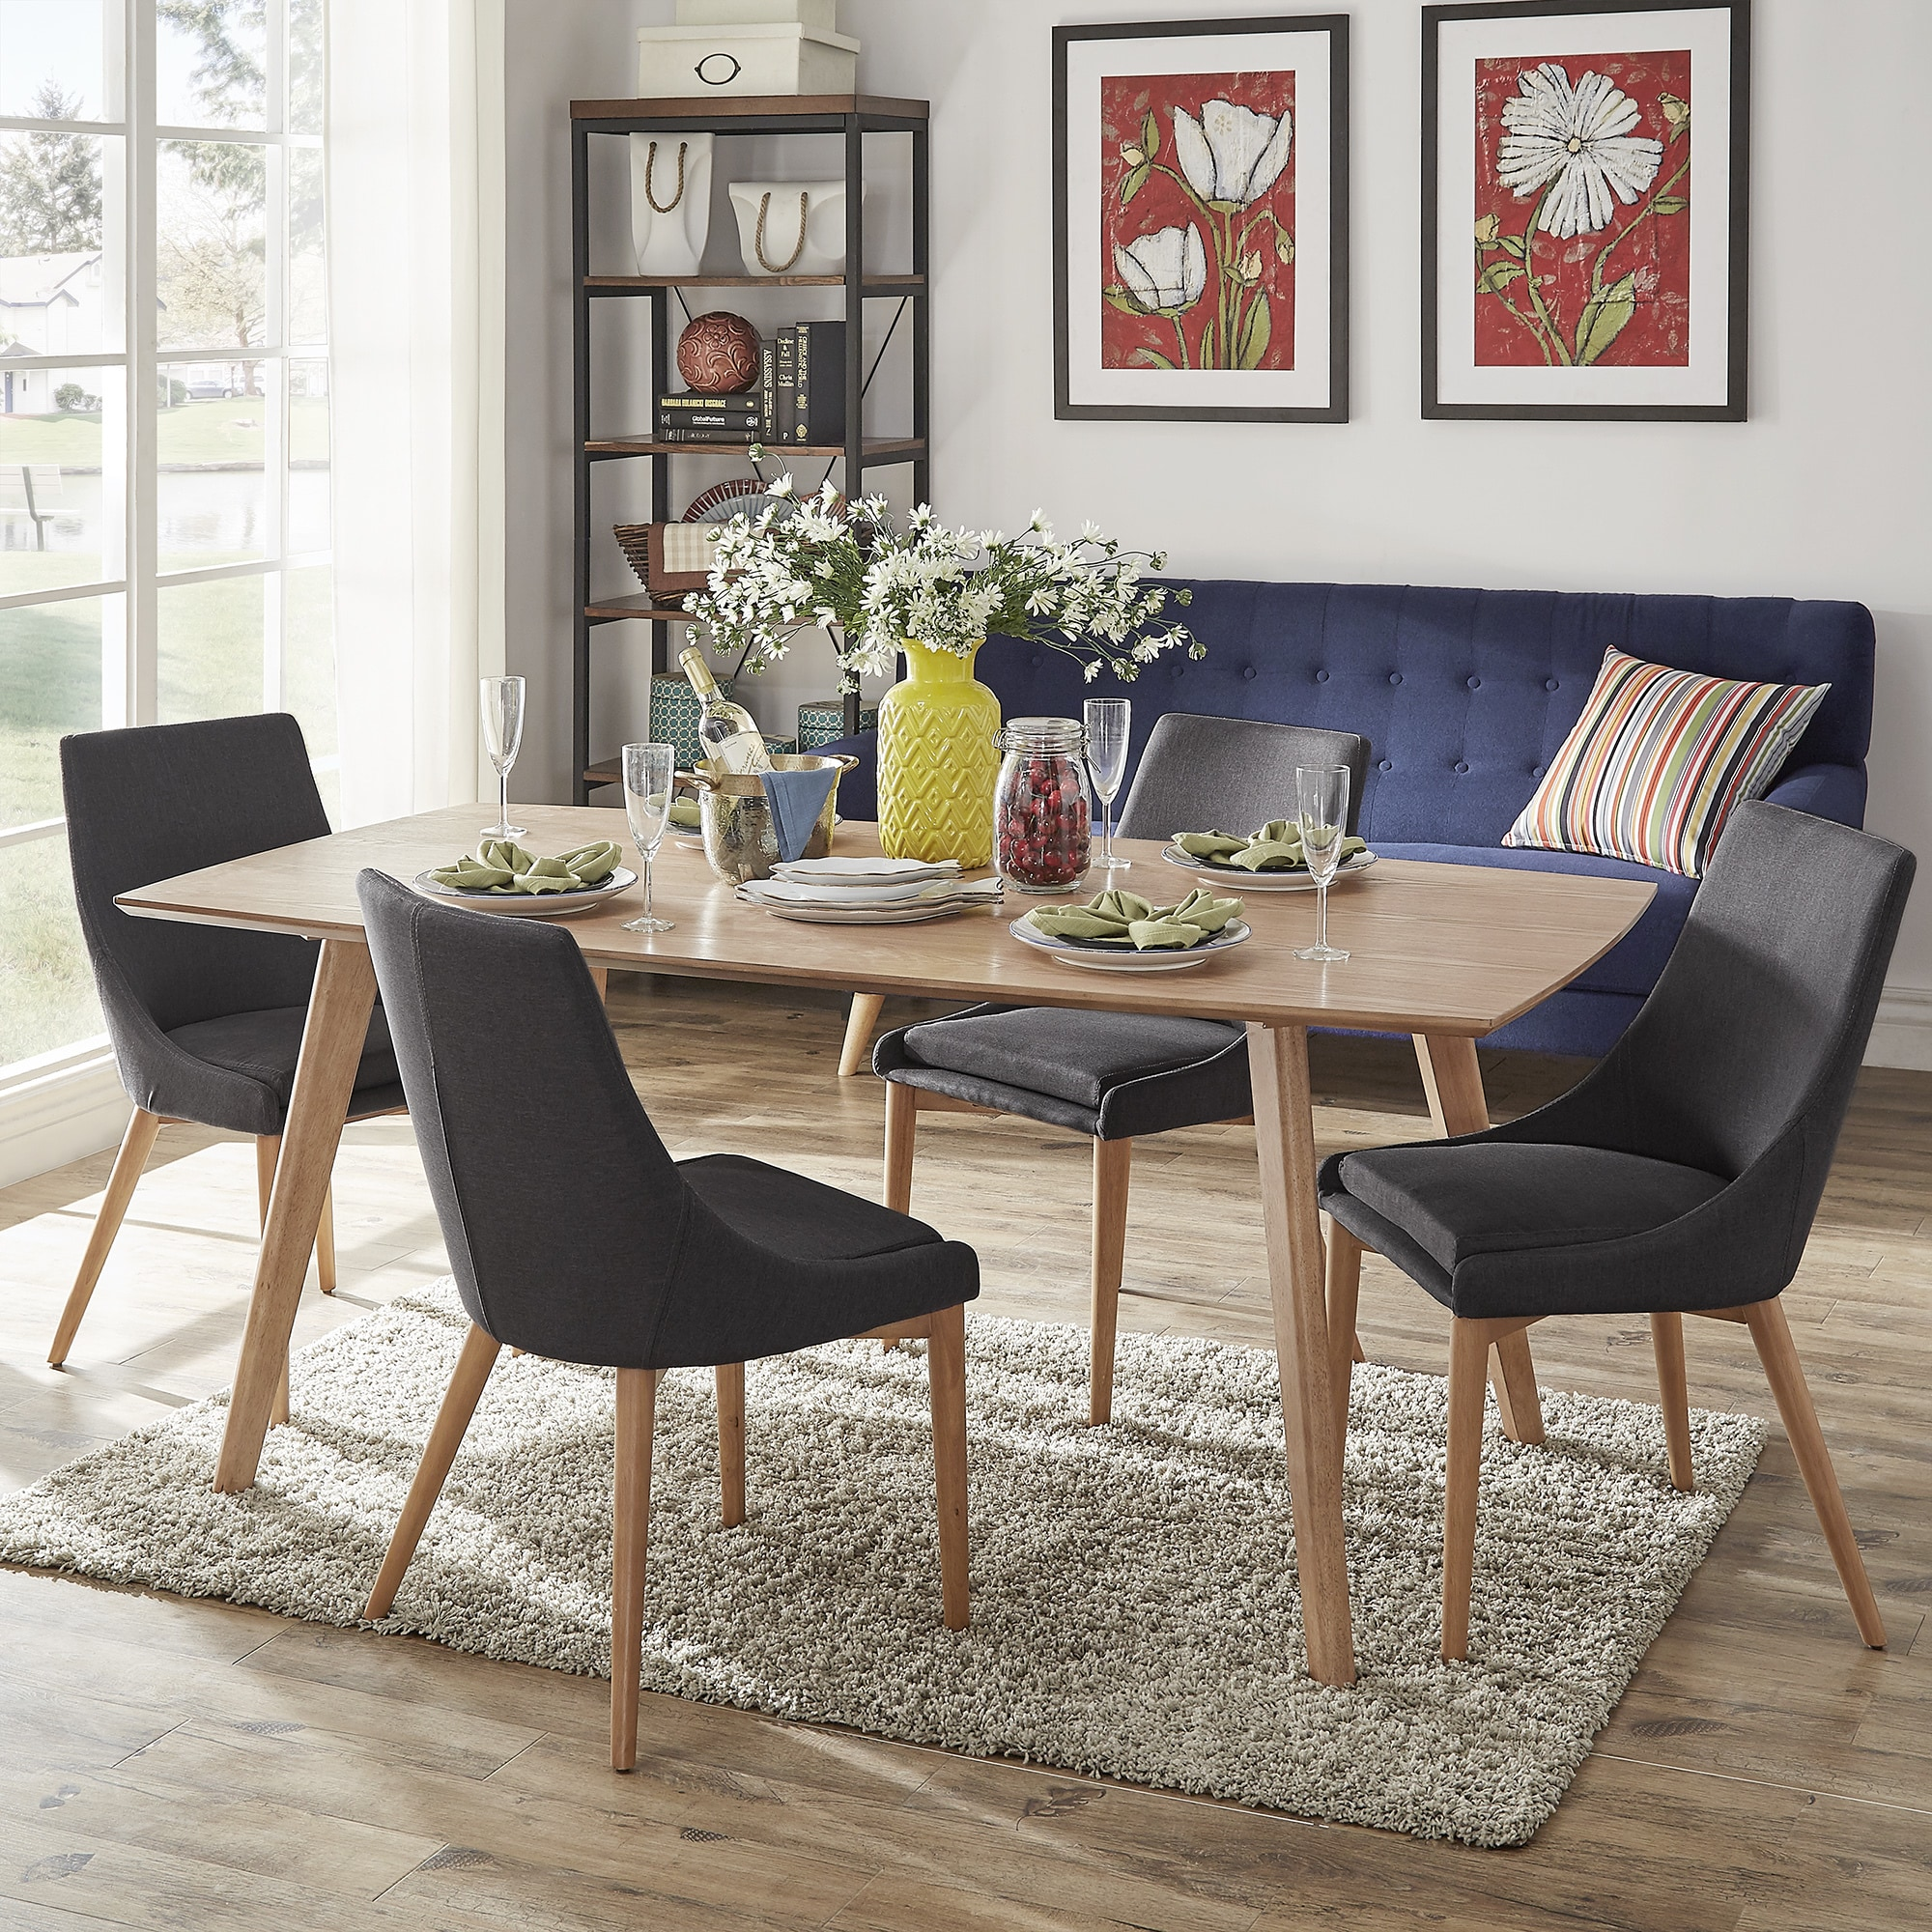 Shop Abelone Scandinavian Dining Table By Inspire Q Modern On Sale Overstock 12615636 Espresso